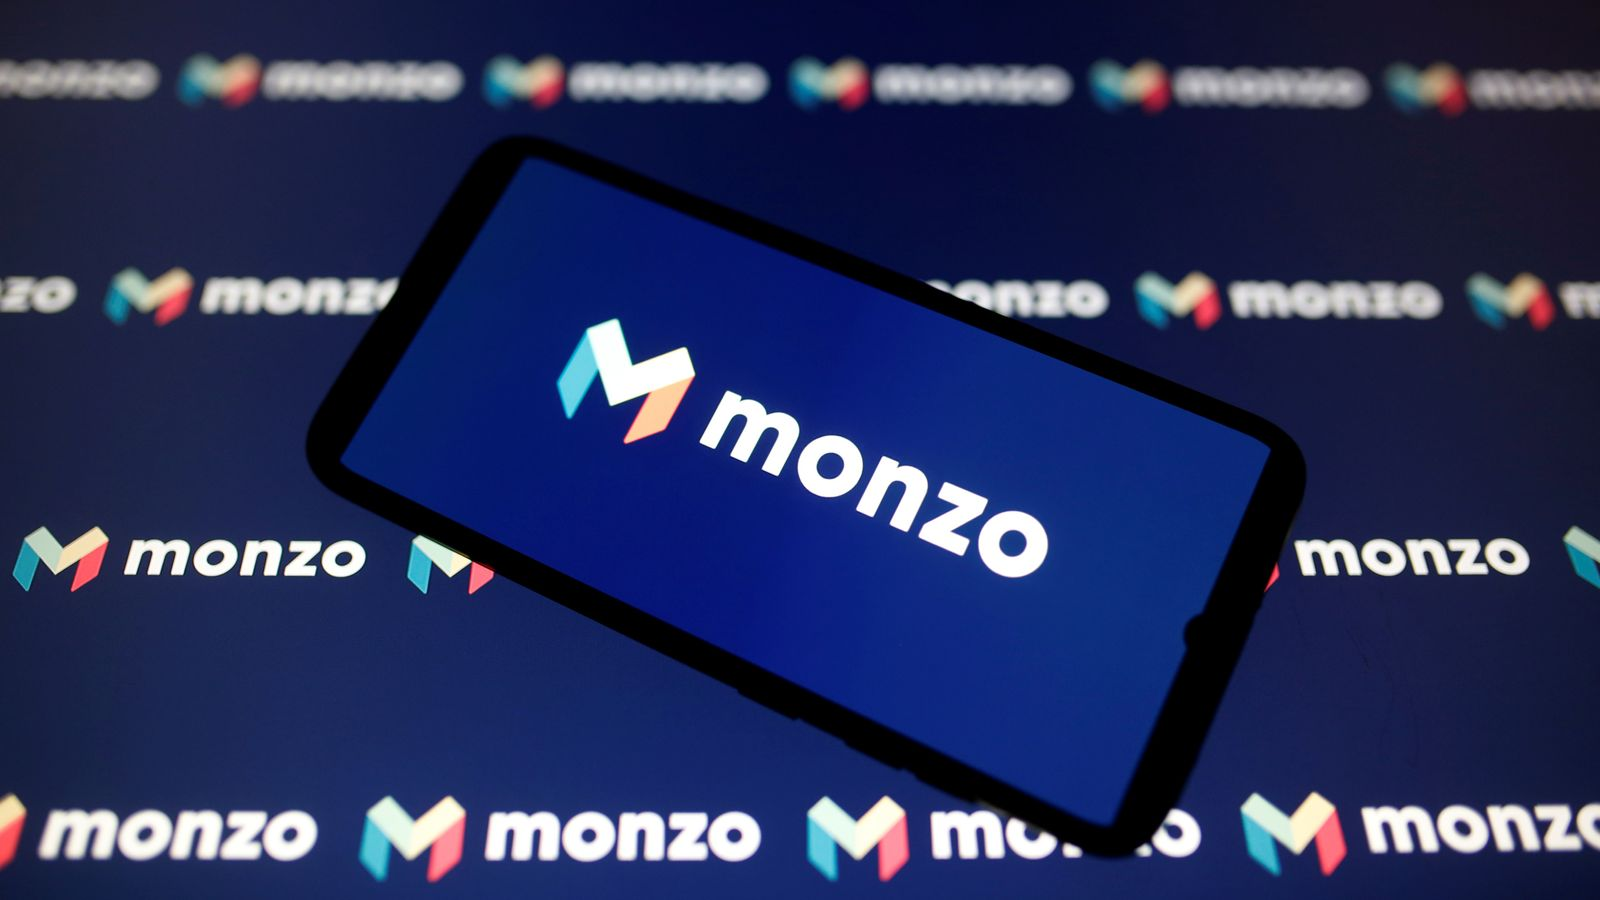 Monzo digital bank investigated by Financial Conduct Authority over money-laundering rules